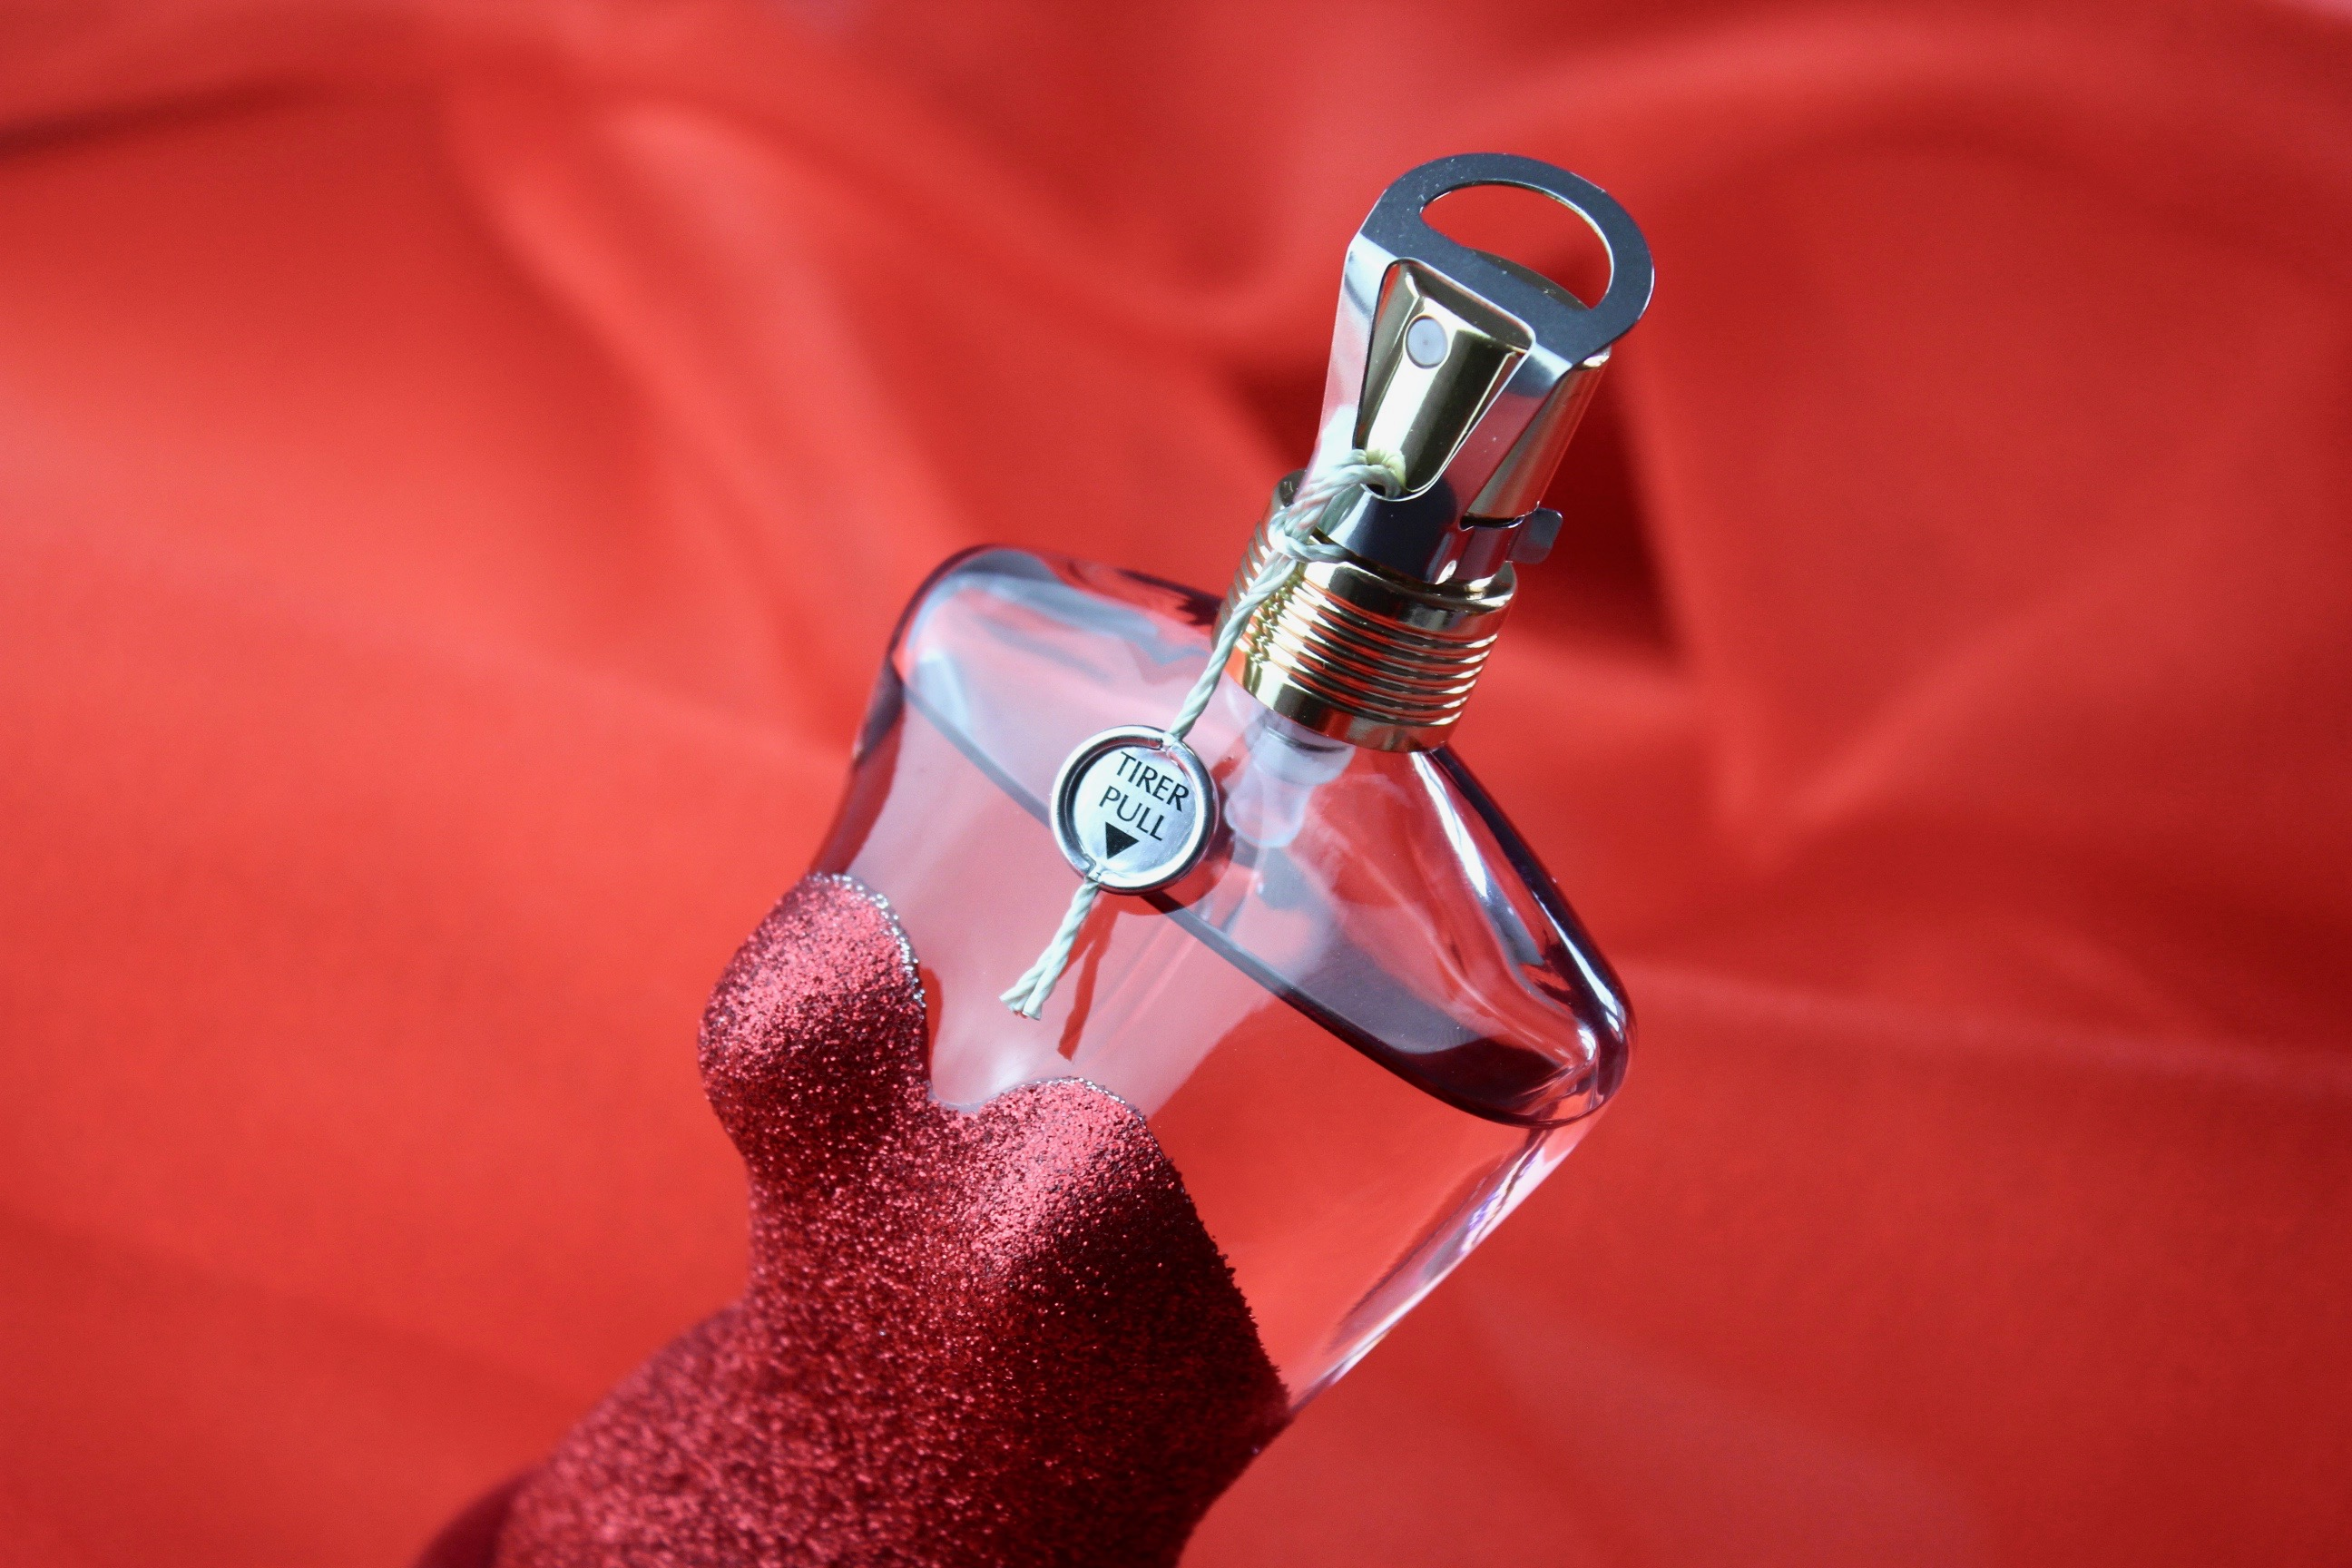 Perfume Review Classique Cabaret By Jean Paul Gaultier The Candy Perfume Boy